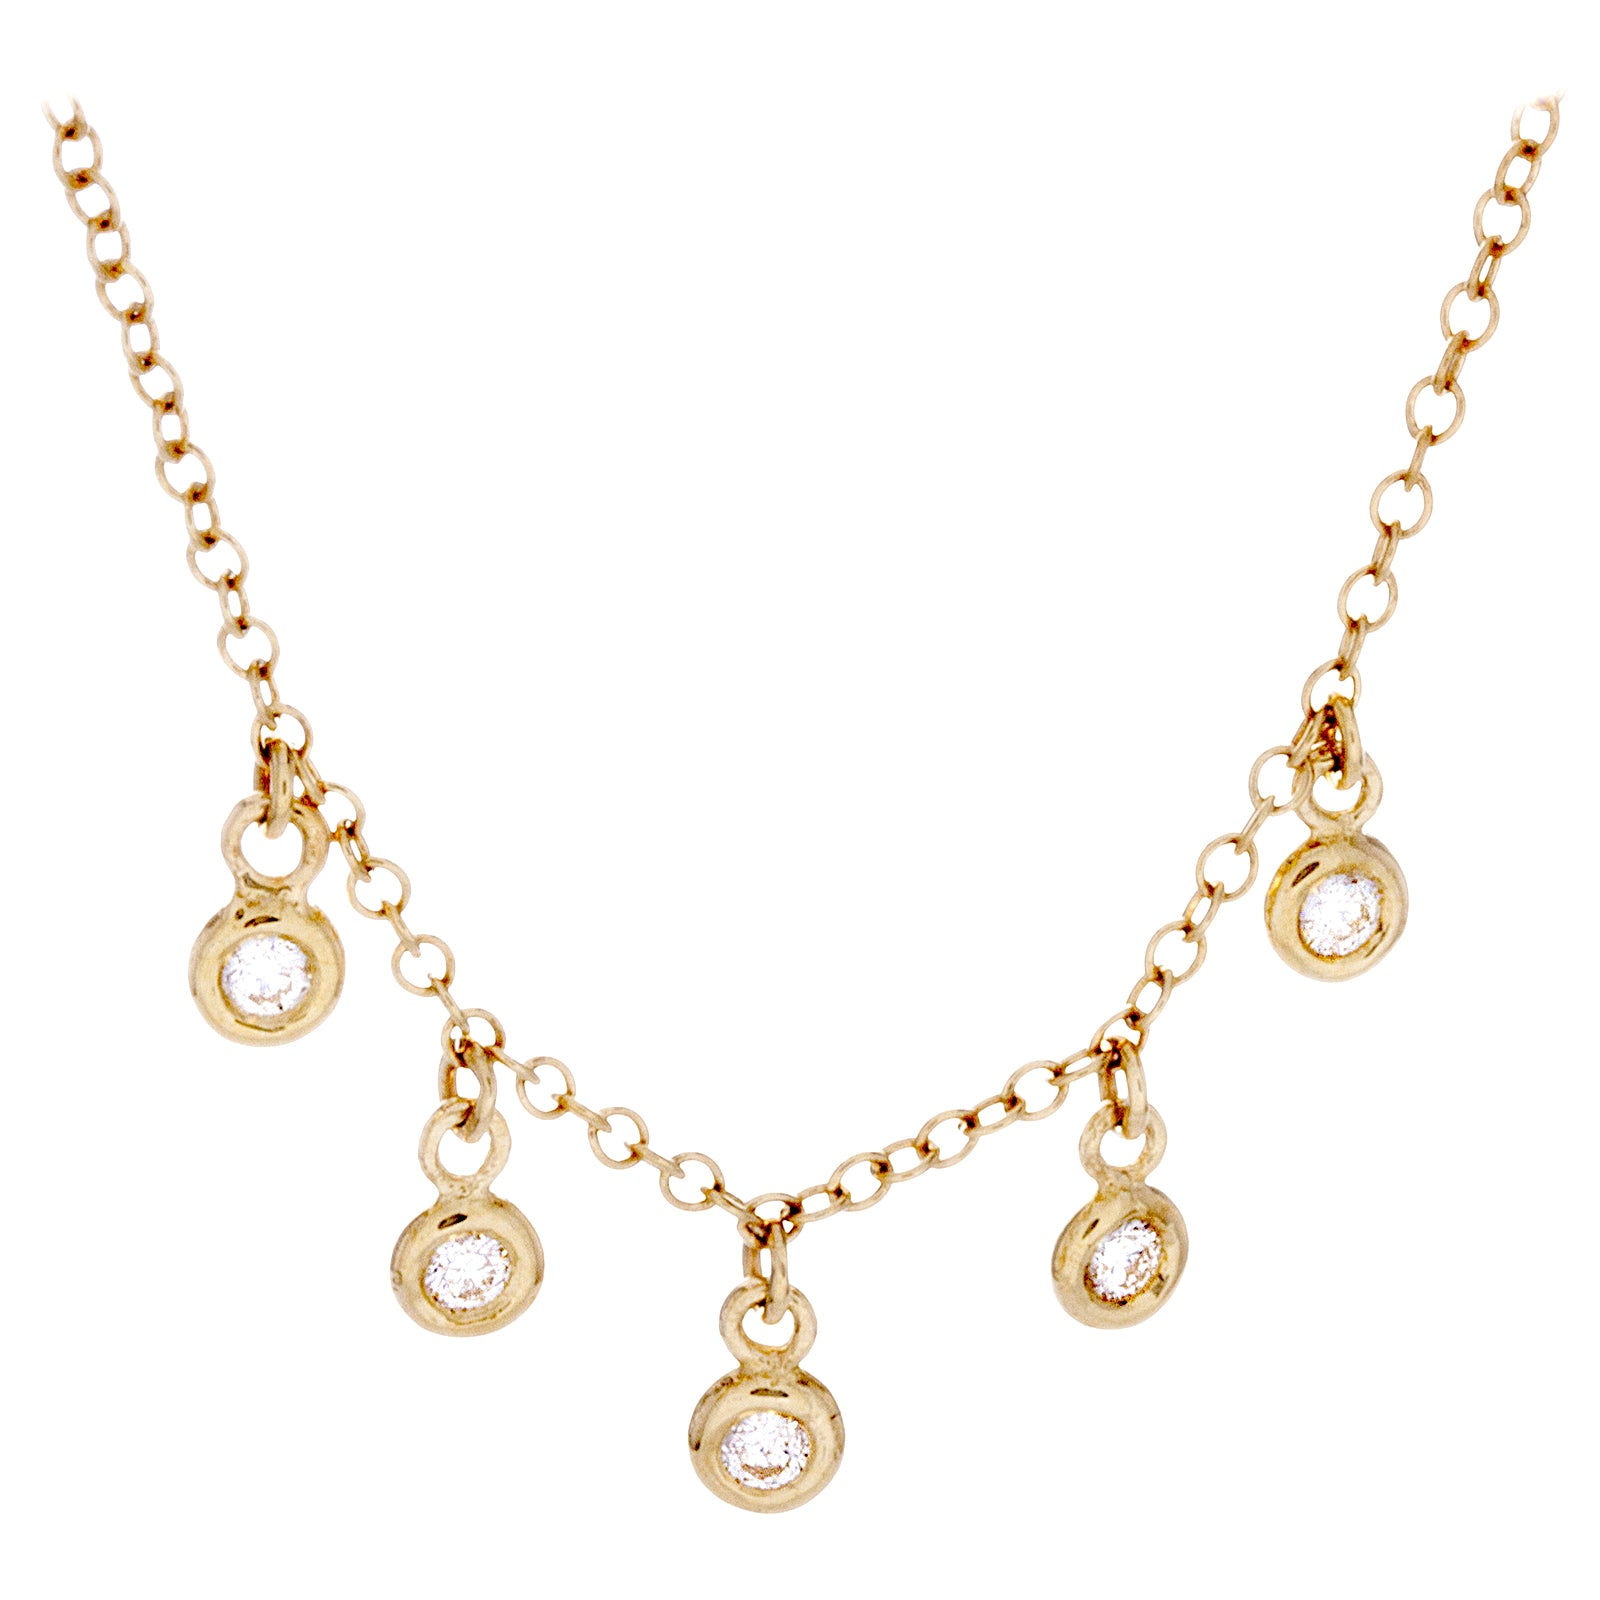 Diamonds & 14K Yellow Gold Necklace - SOLD/CAN BE SPECIAL ORDERED WITH 4-6 WEEKS DELIVERY TIME FRAME